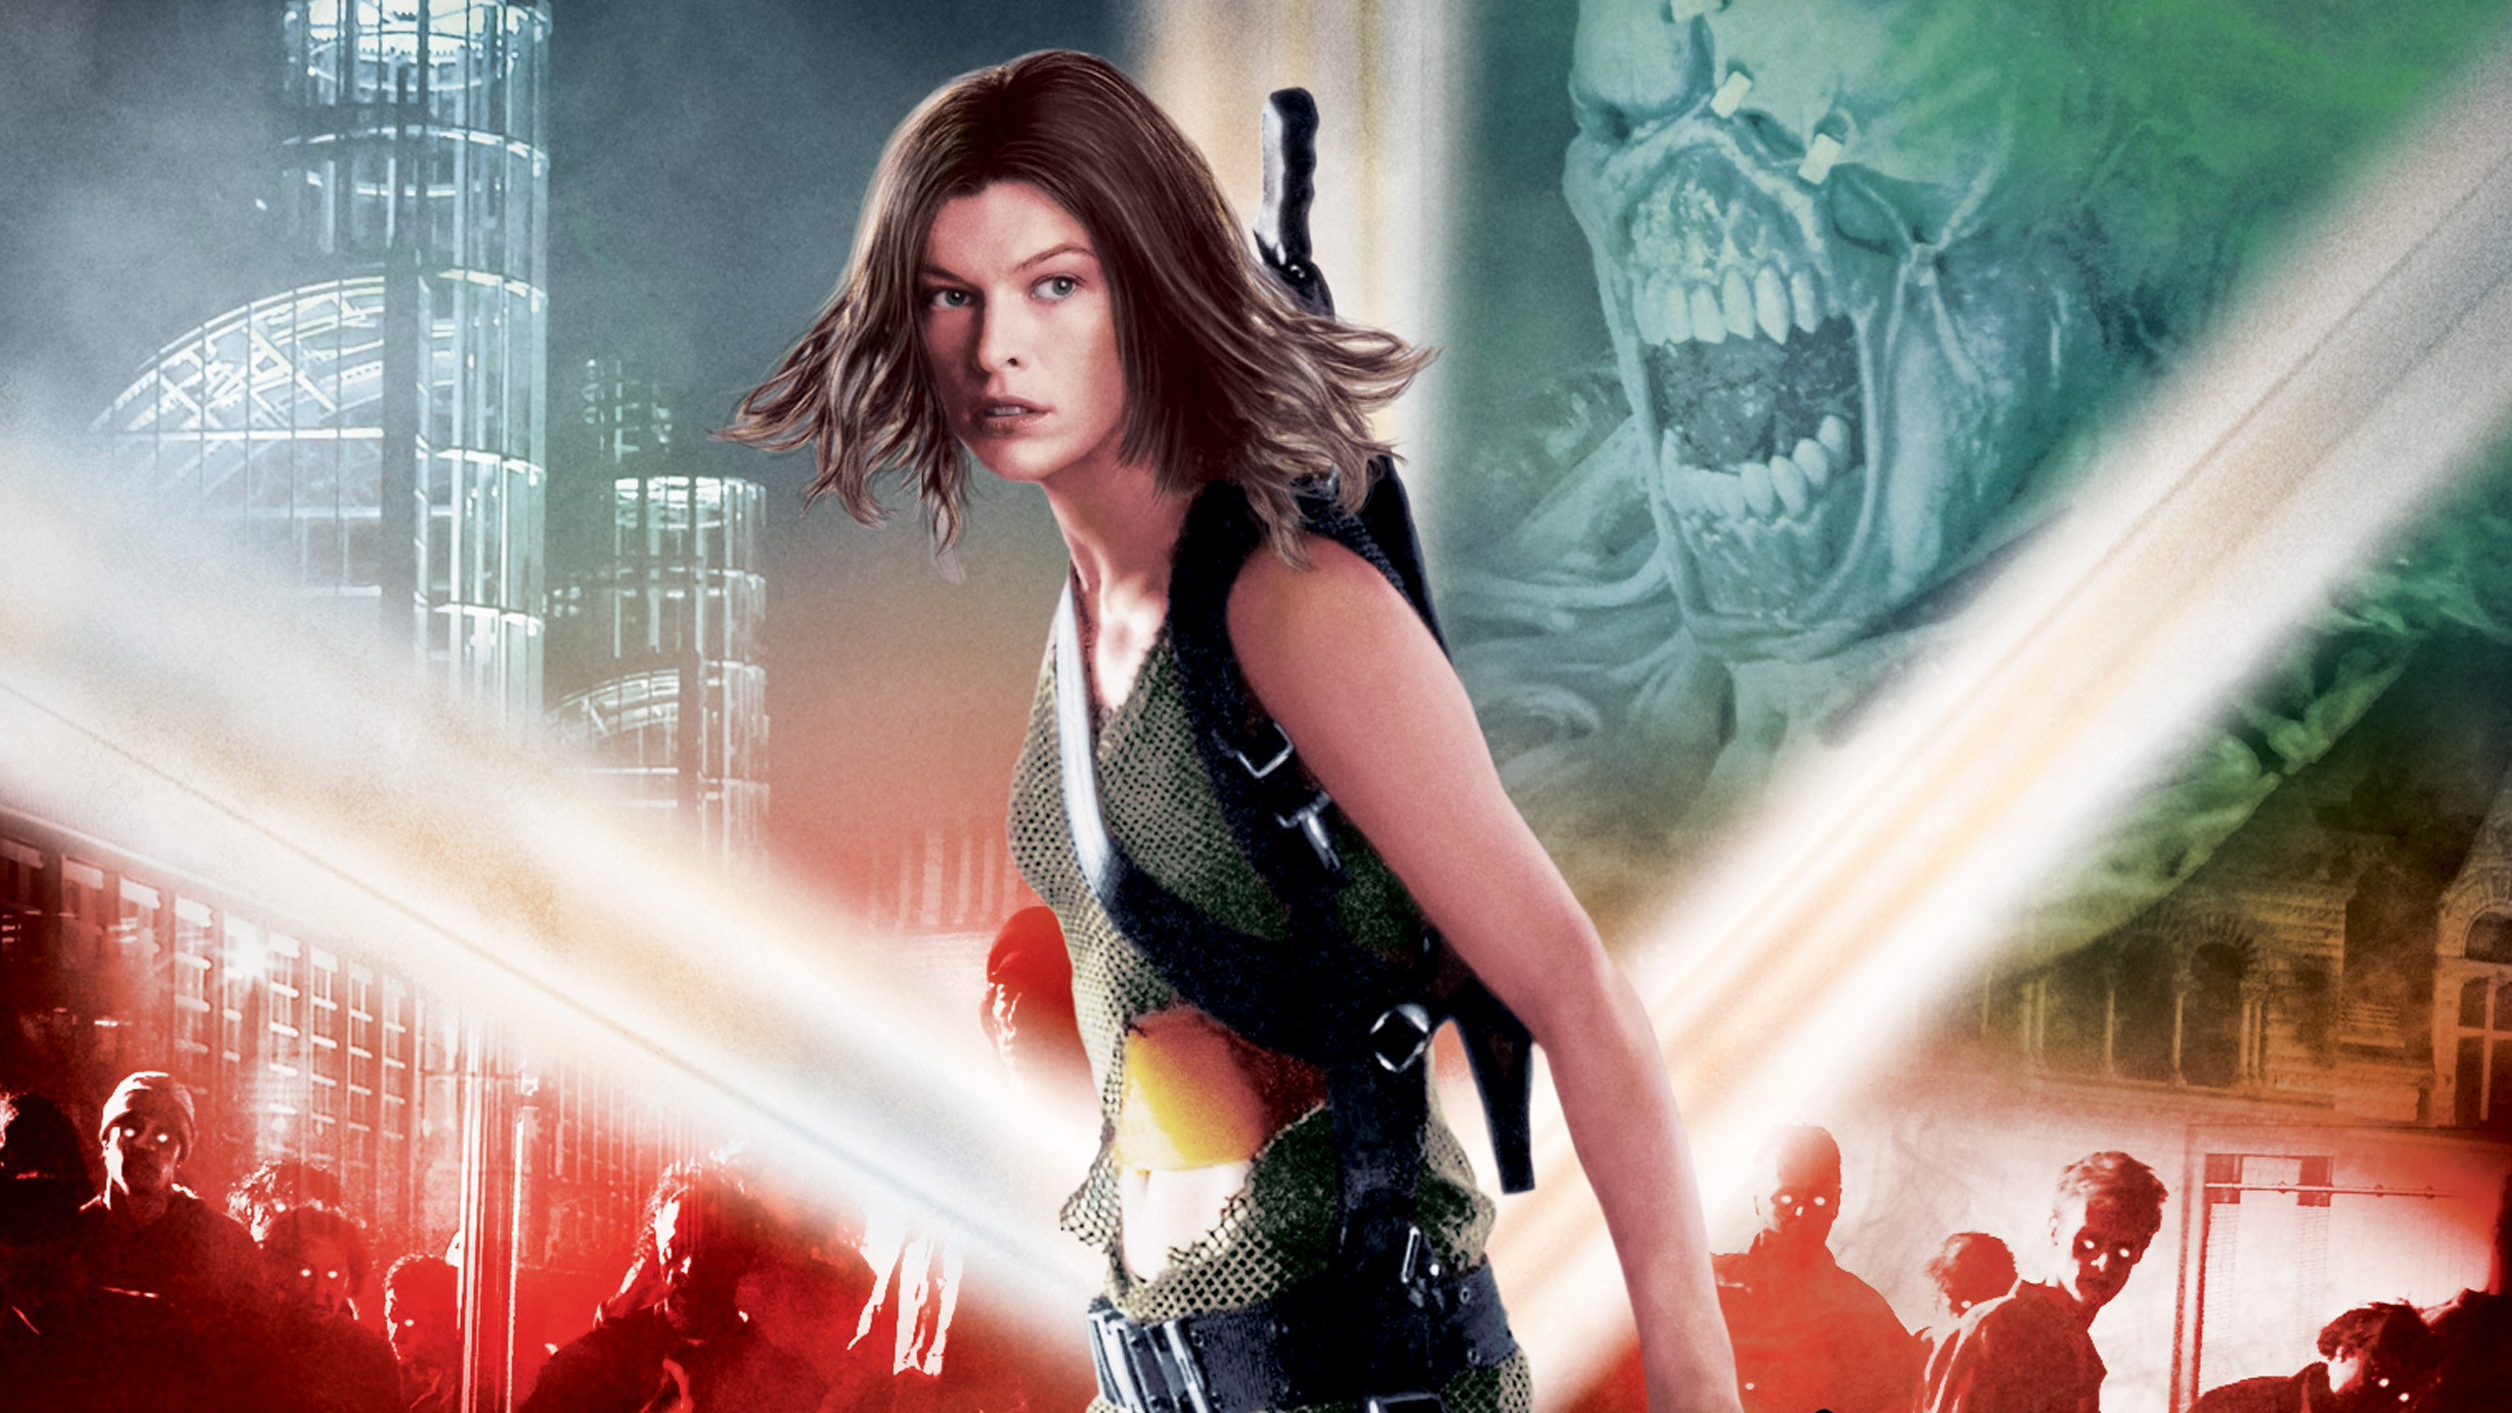 Resident Evil Apocalypse, HD Movies, 4k Wallpapers, Images ...